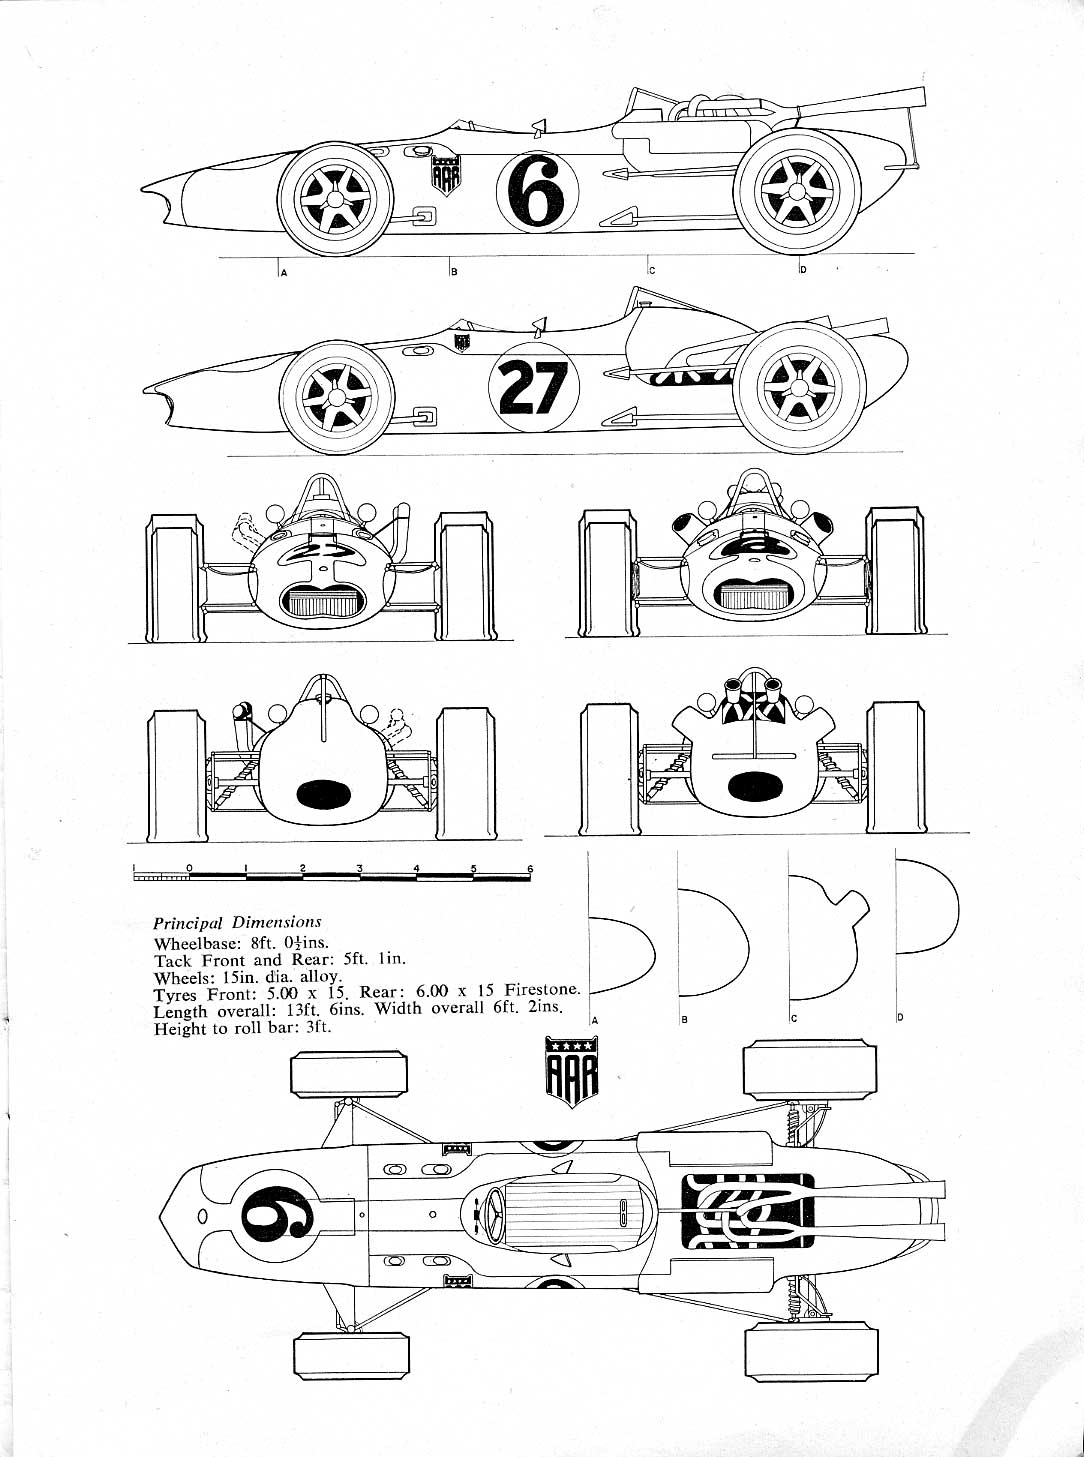 Eagle Mk1 blueprint